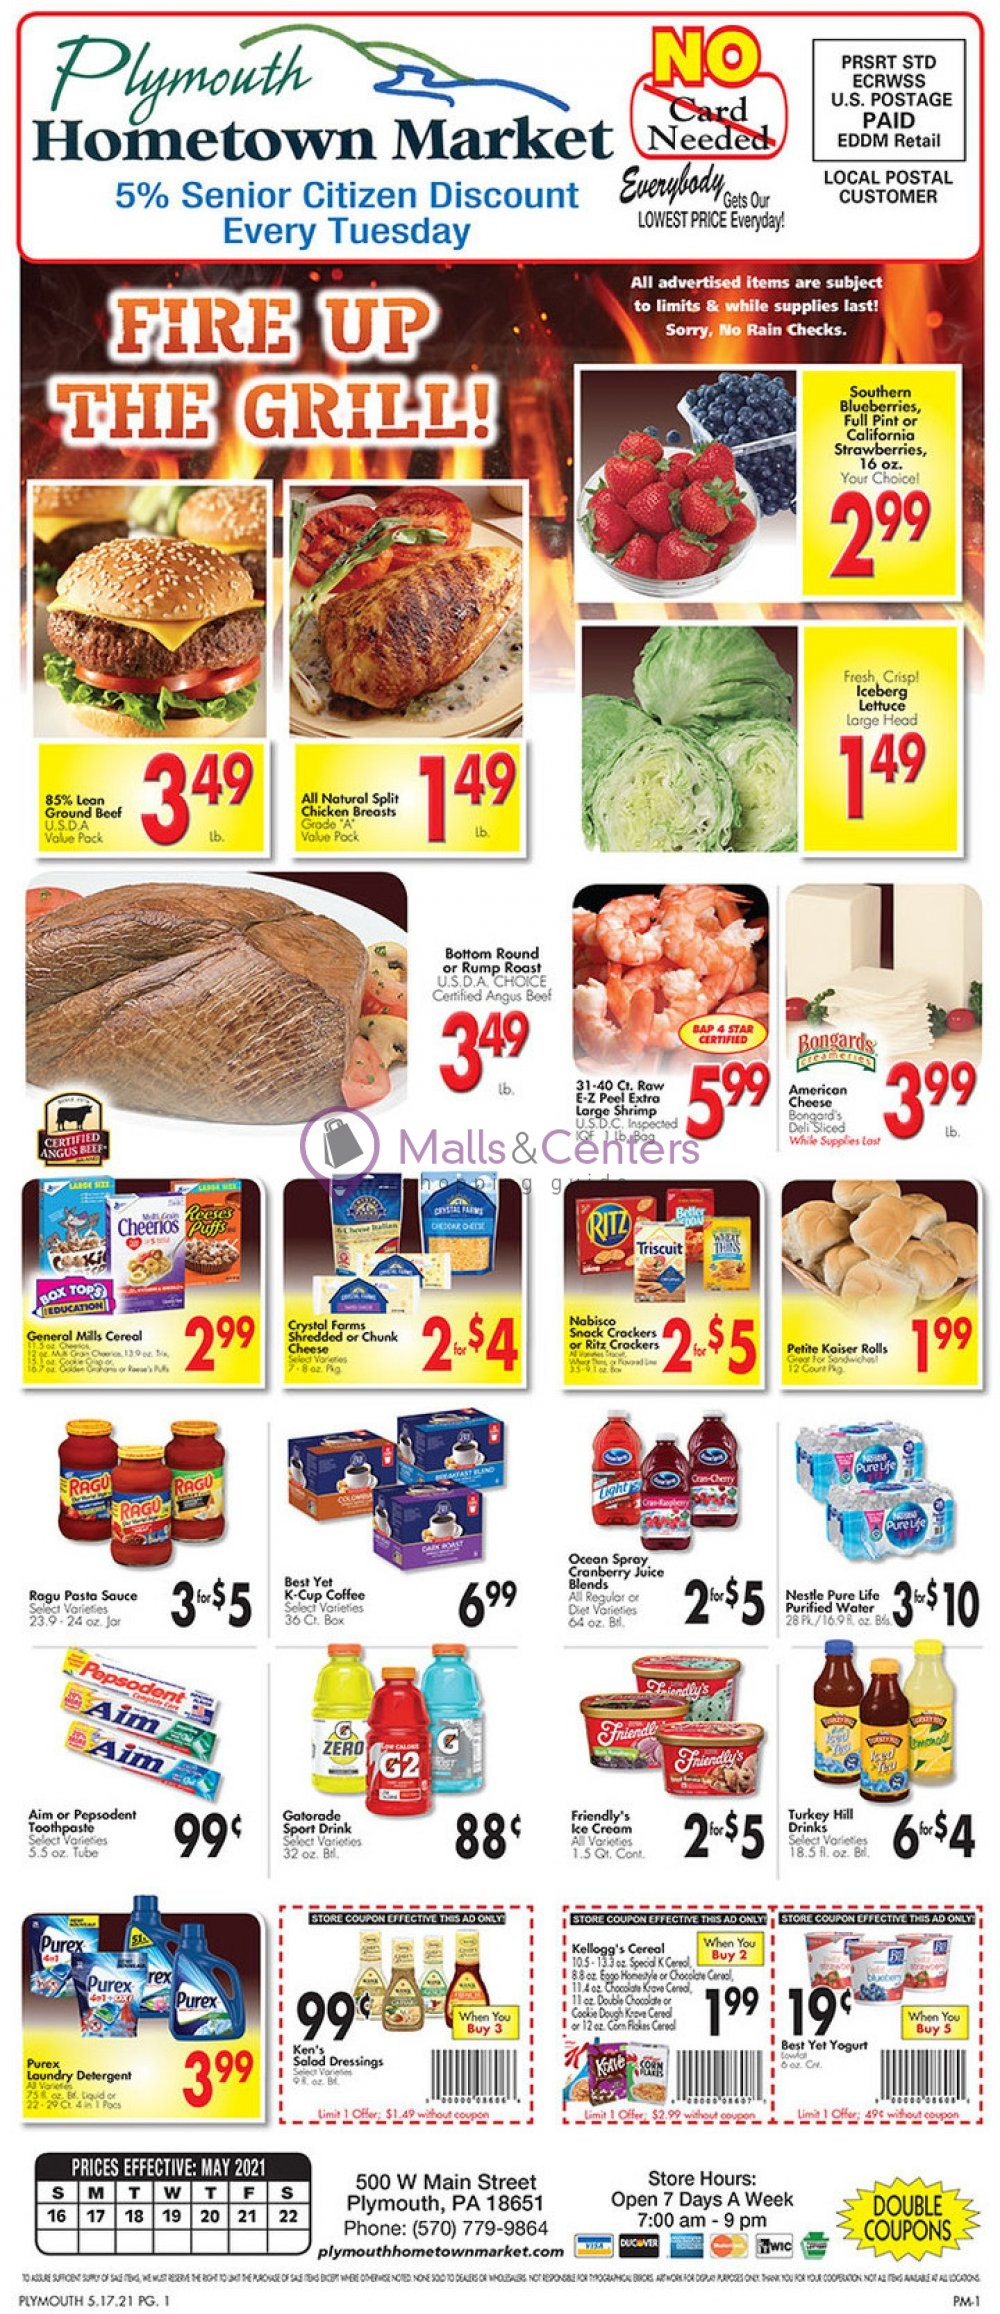 weekly ads Plymouth Hometown Market - page 1 - mallscenters.com